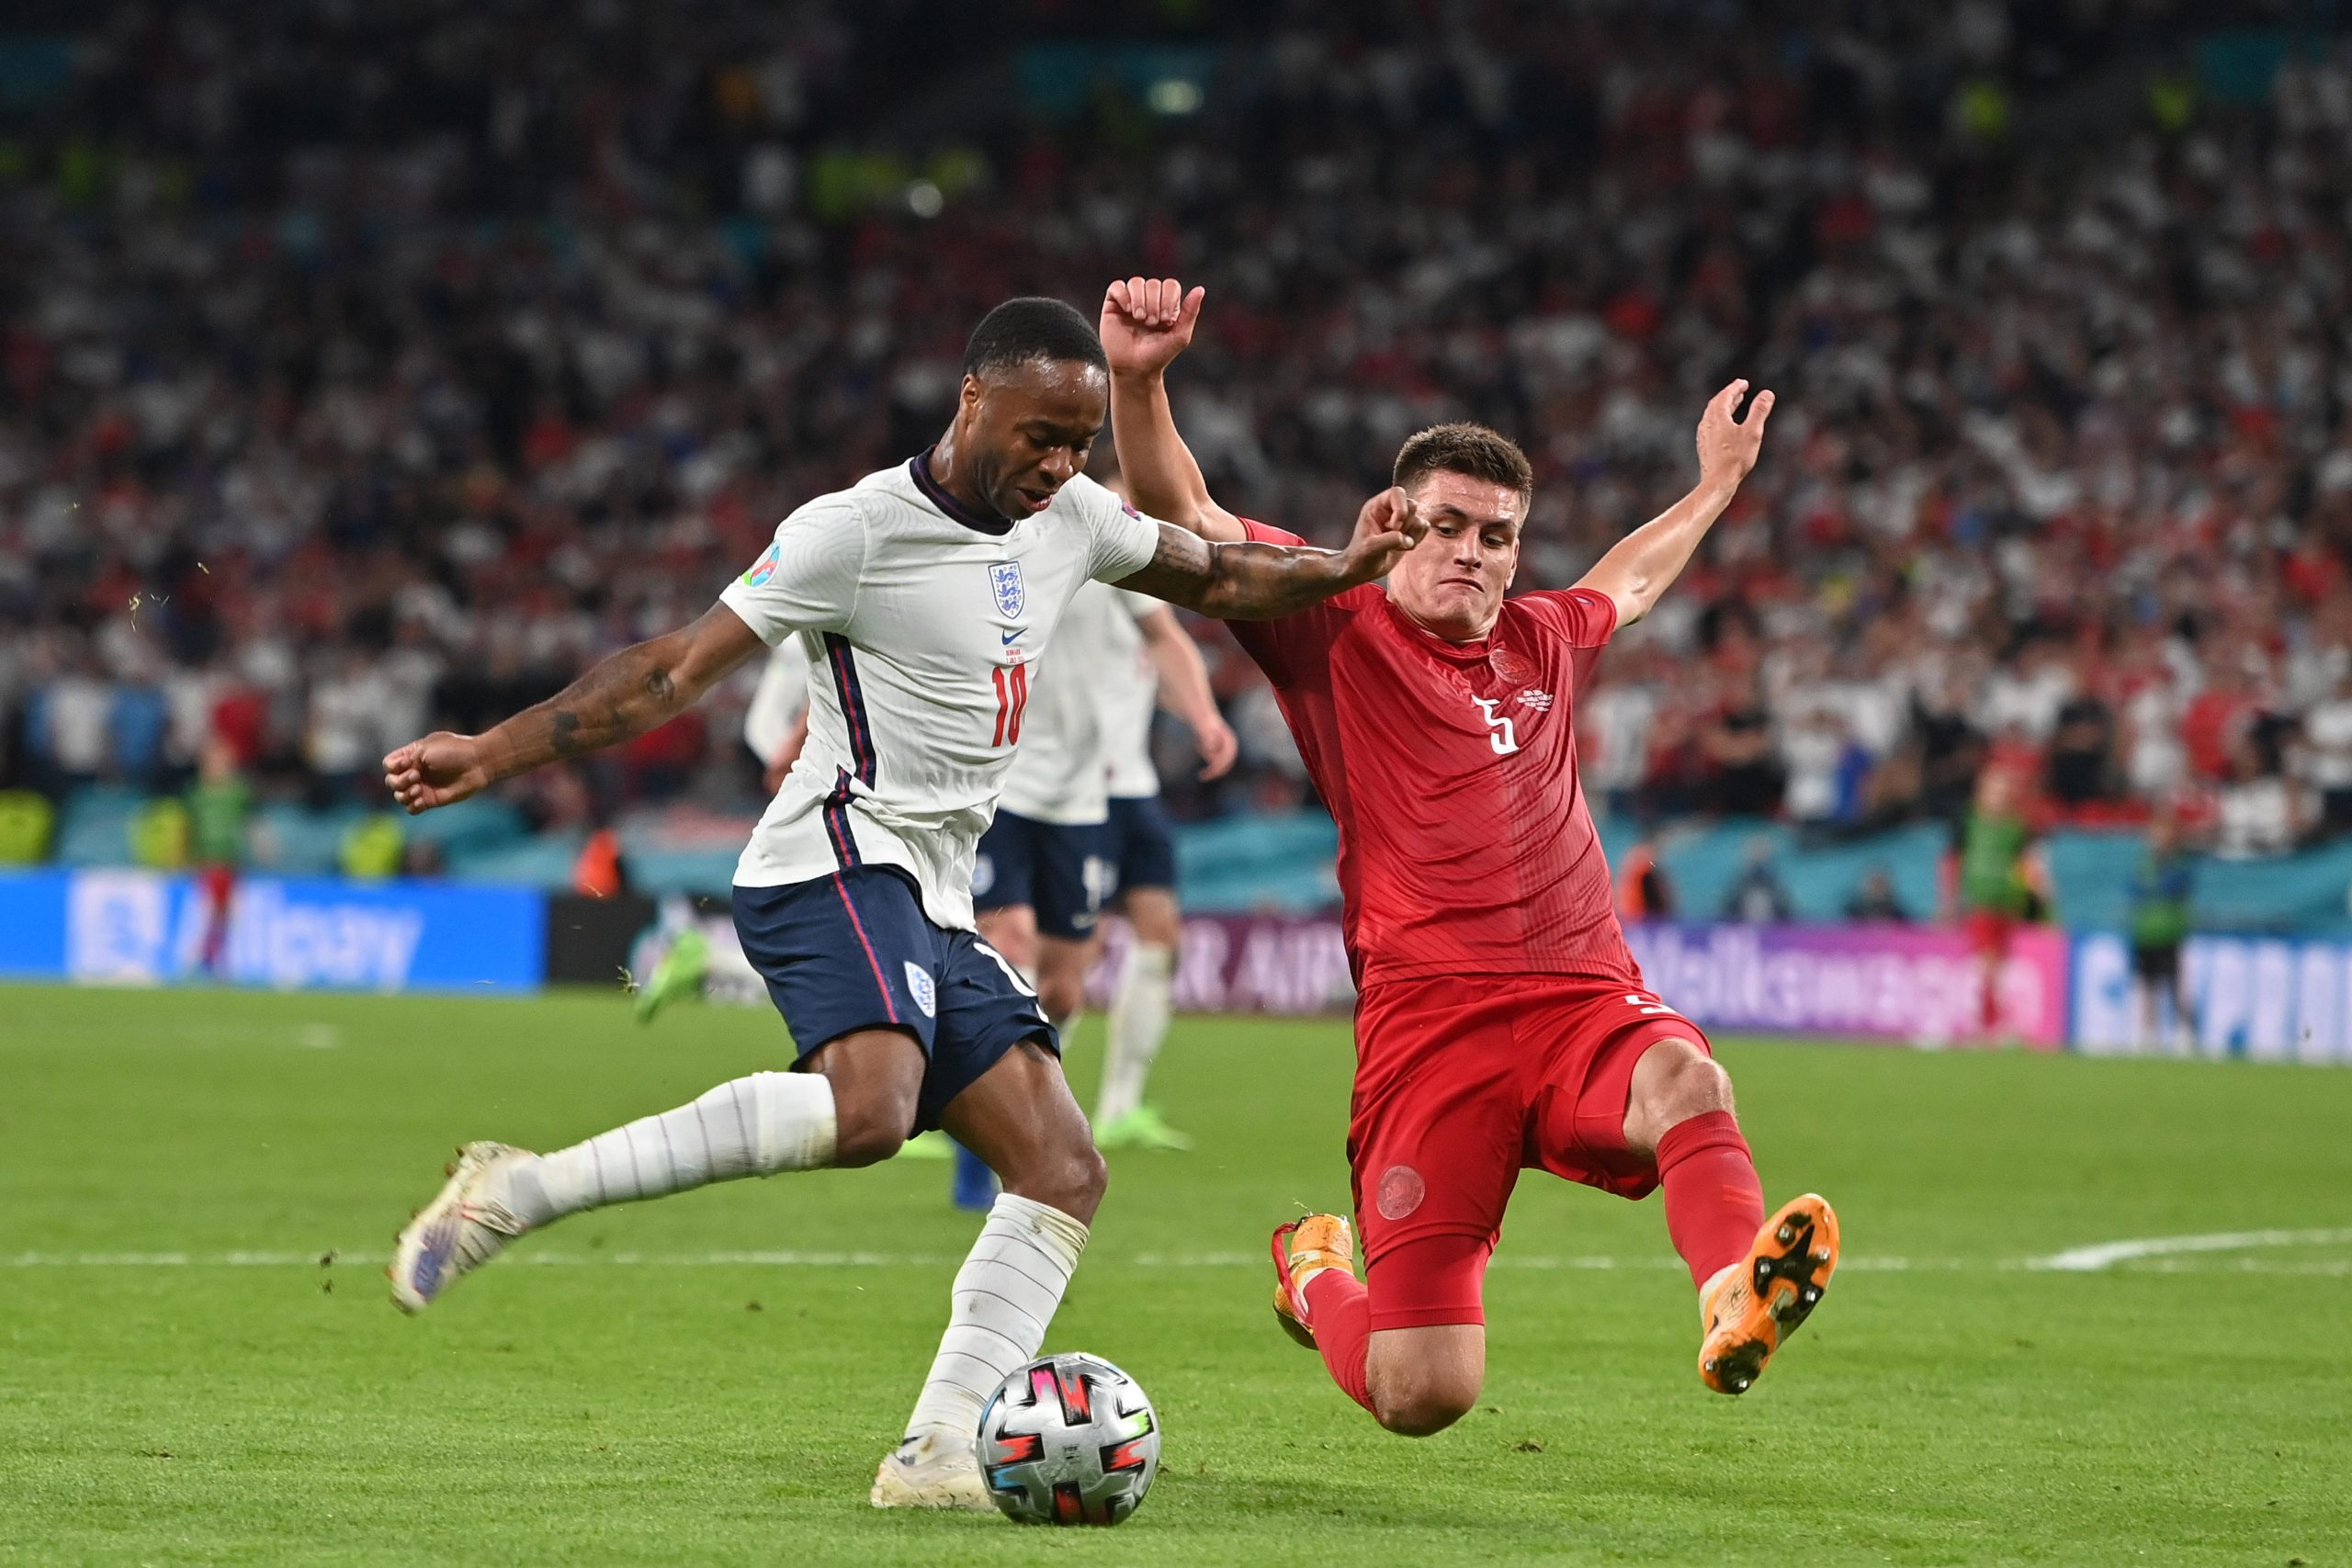 Raheem Sterling of England in action against Denmark at Euro 2020